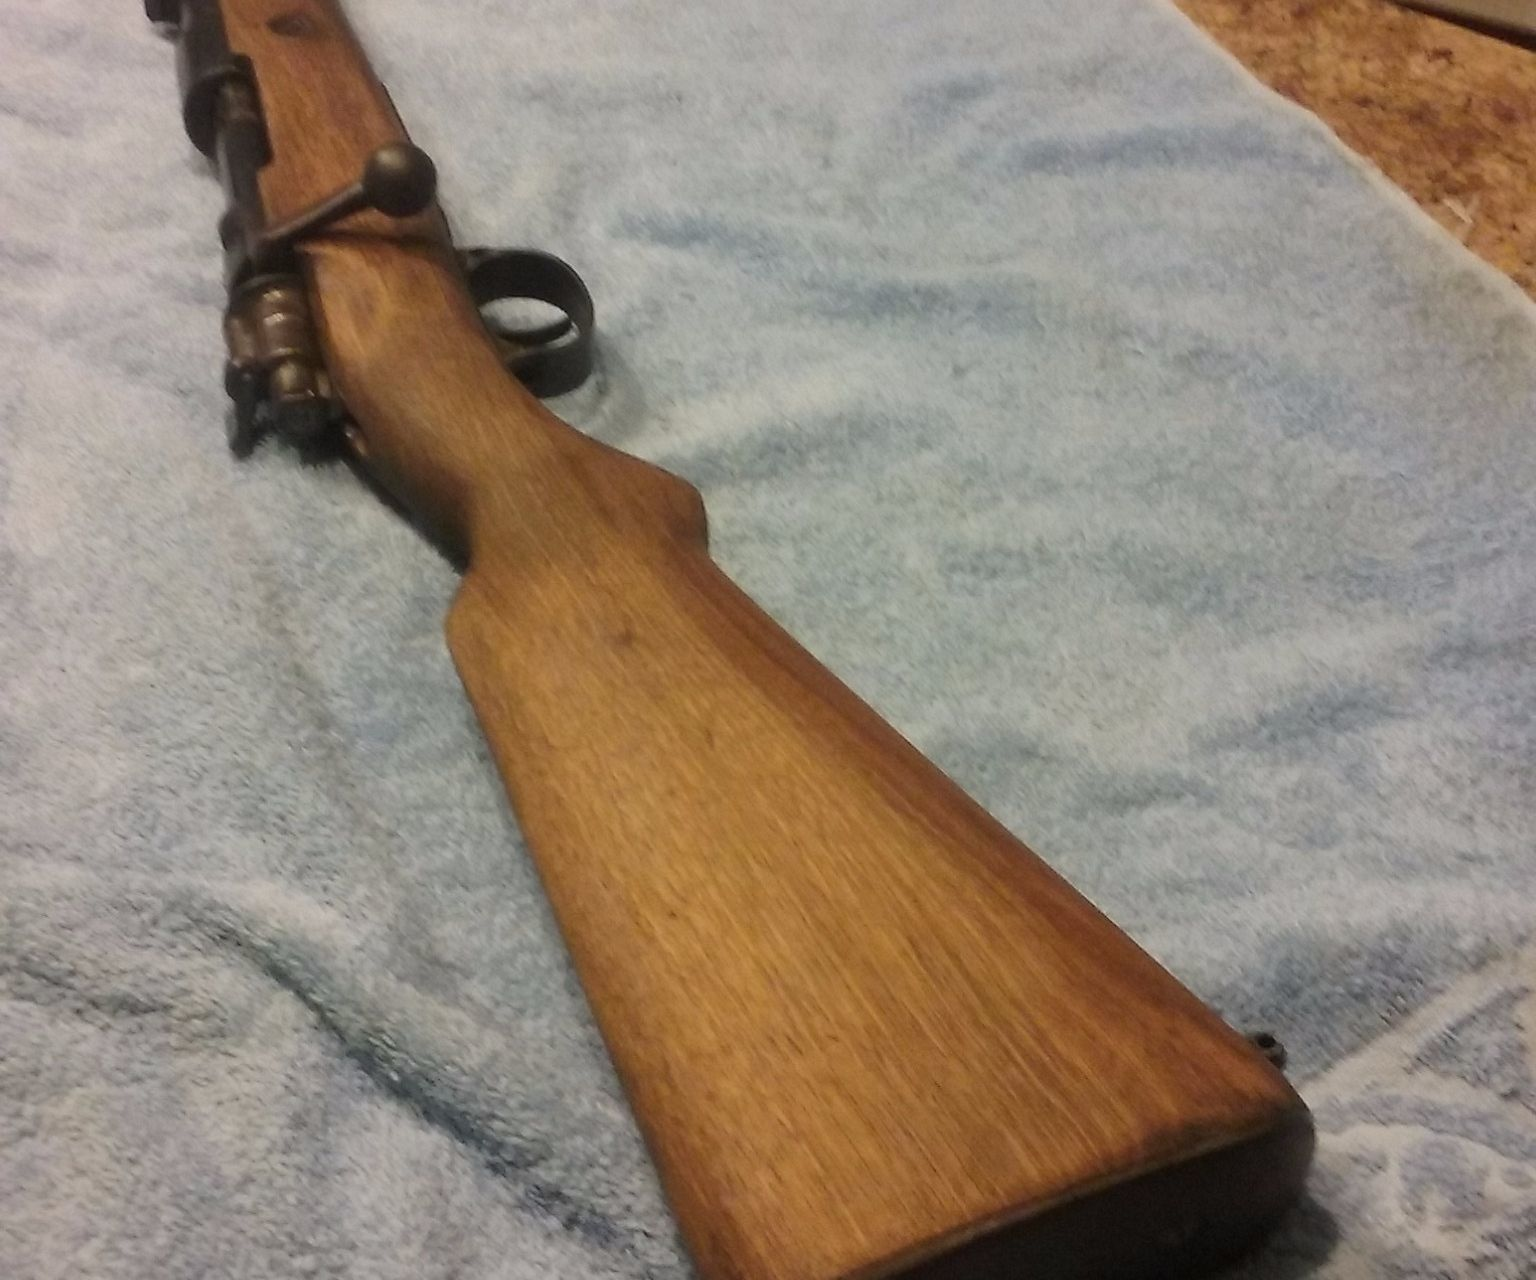 Cleaning and maintaining a bolt action rifle